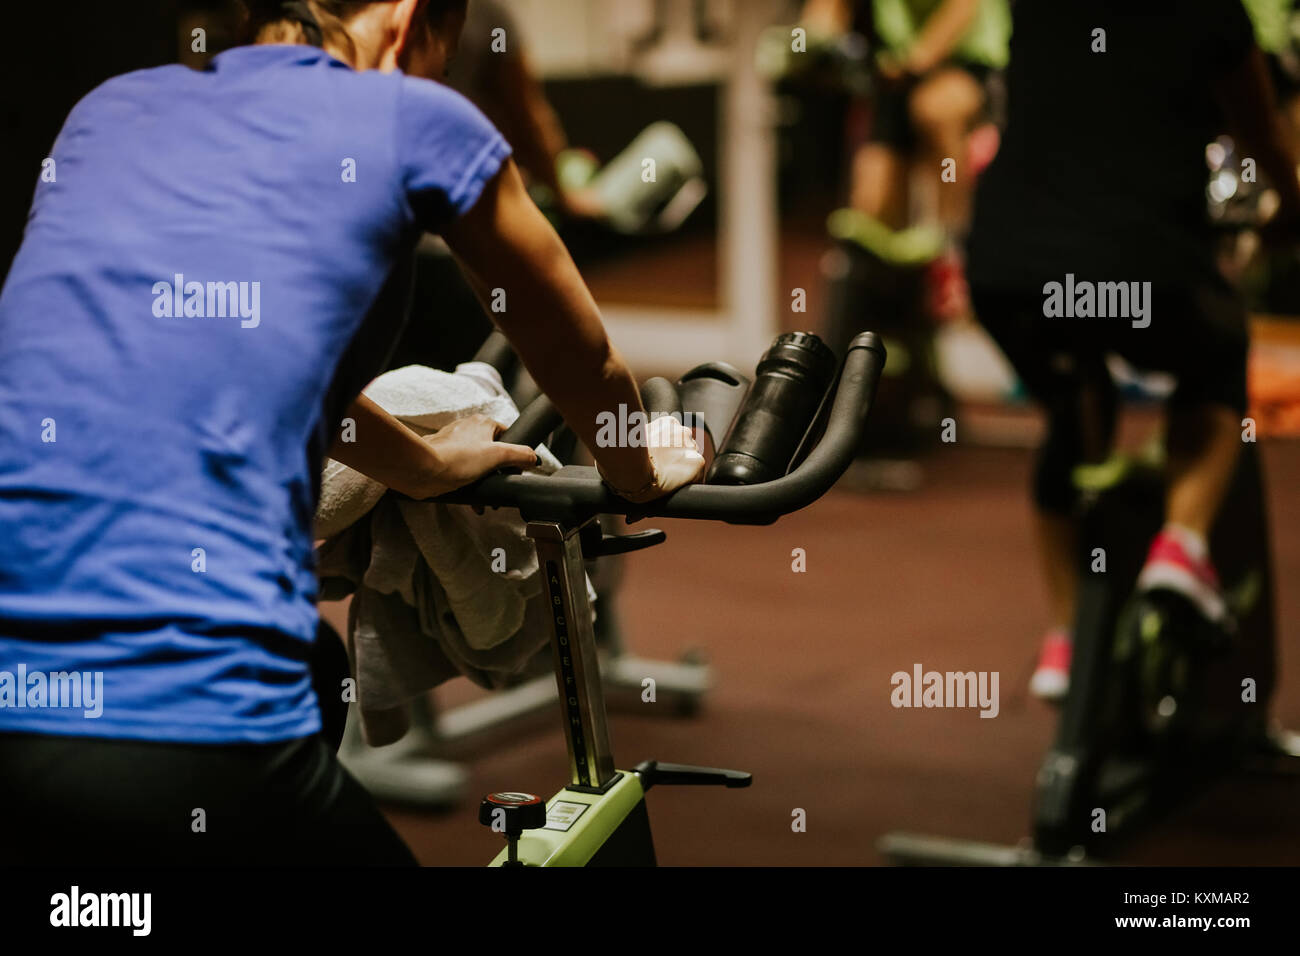 cycling class group. spin class workout - Stock Image